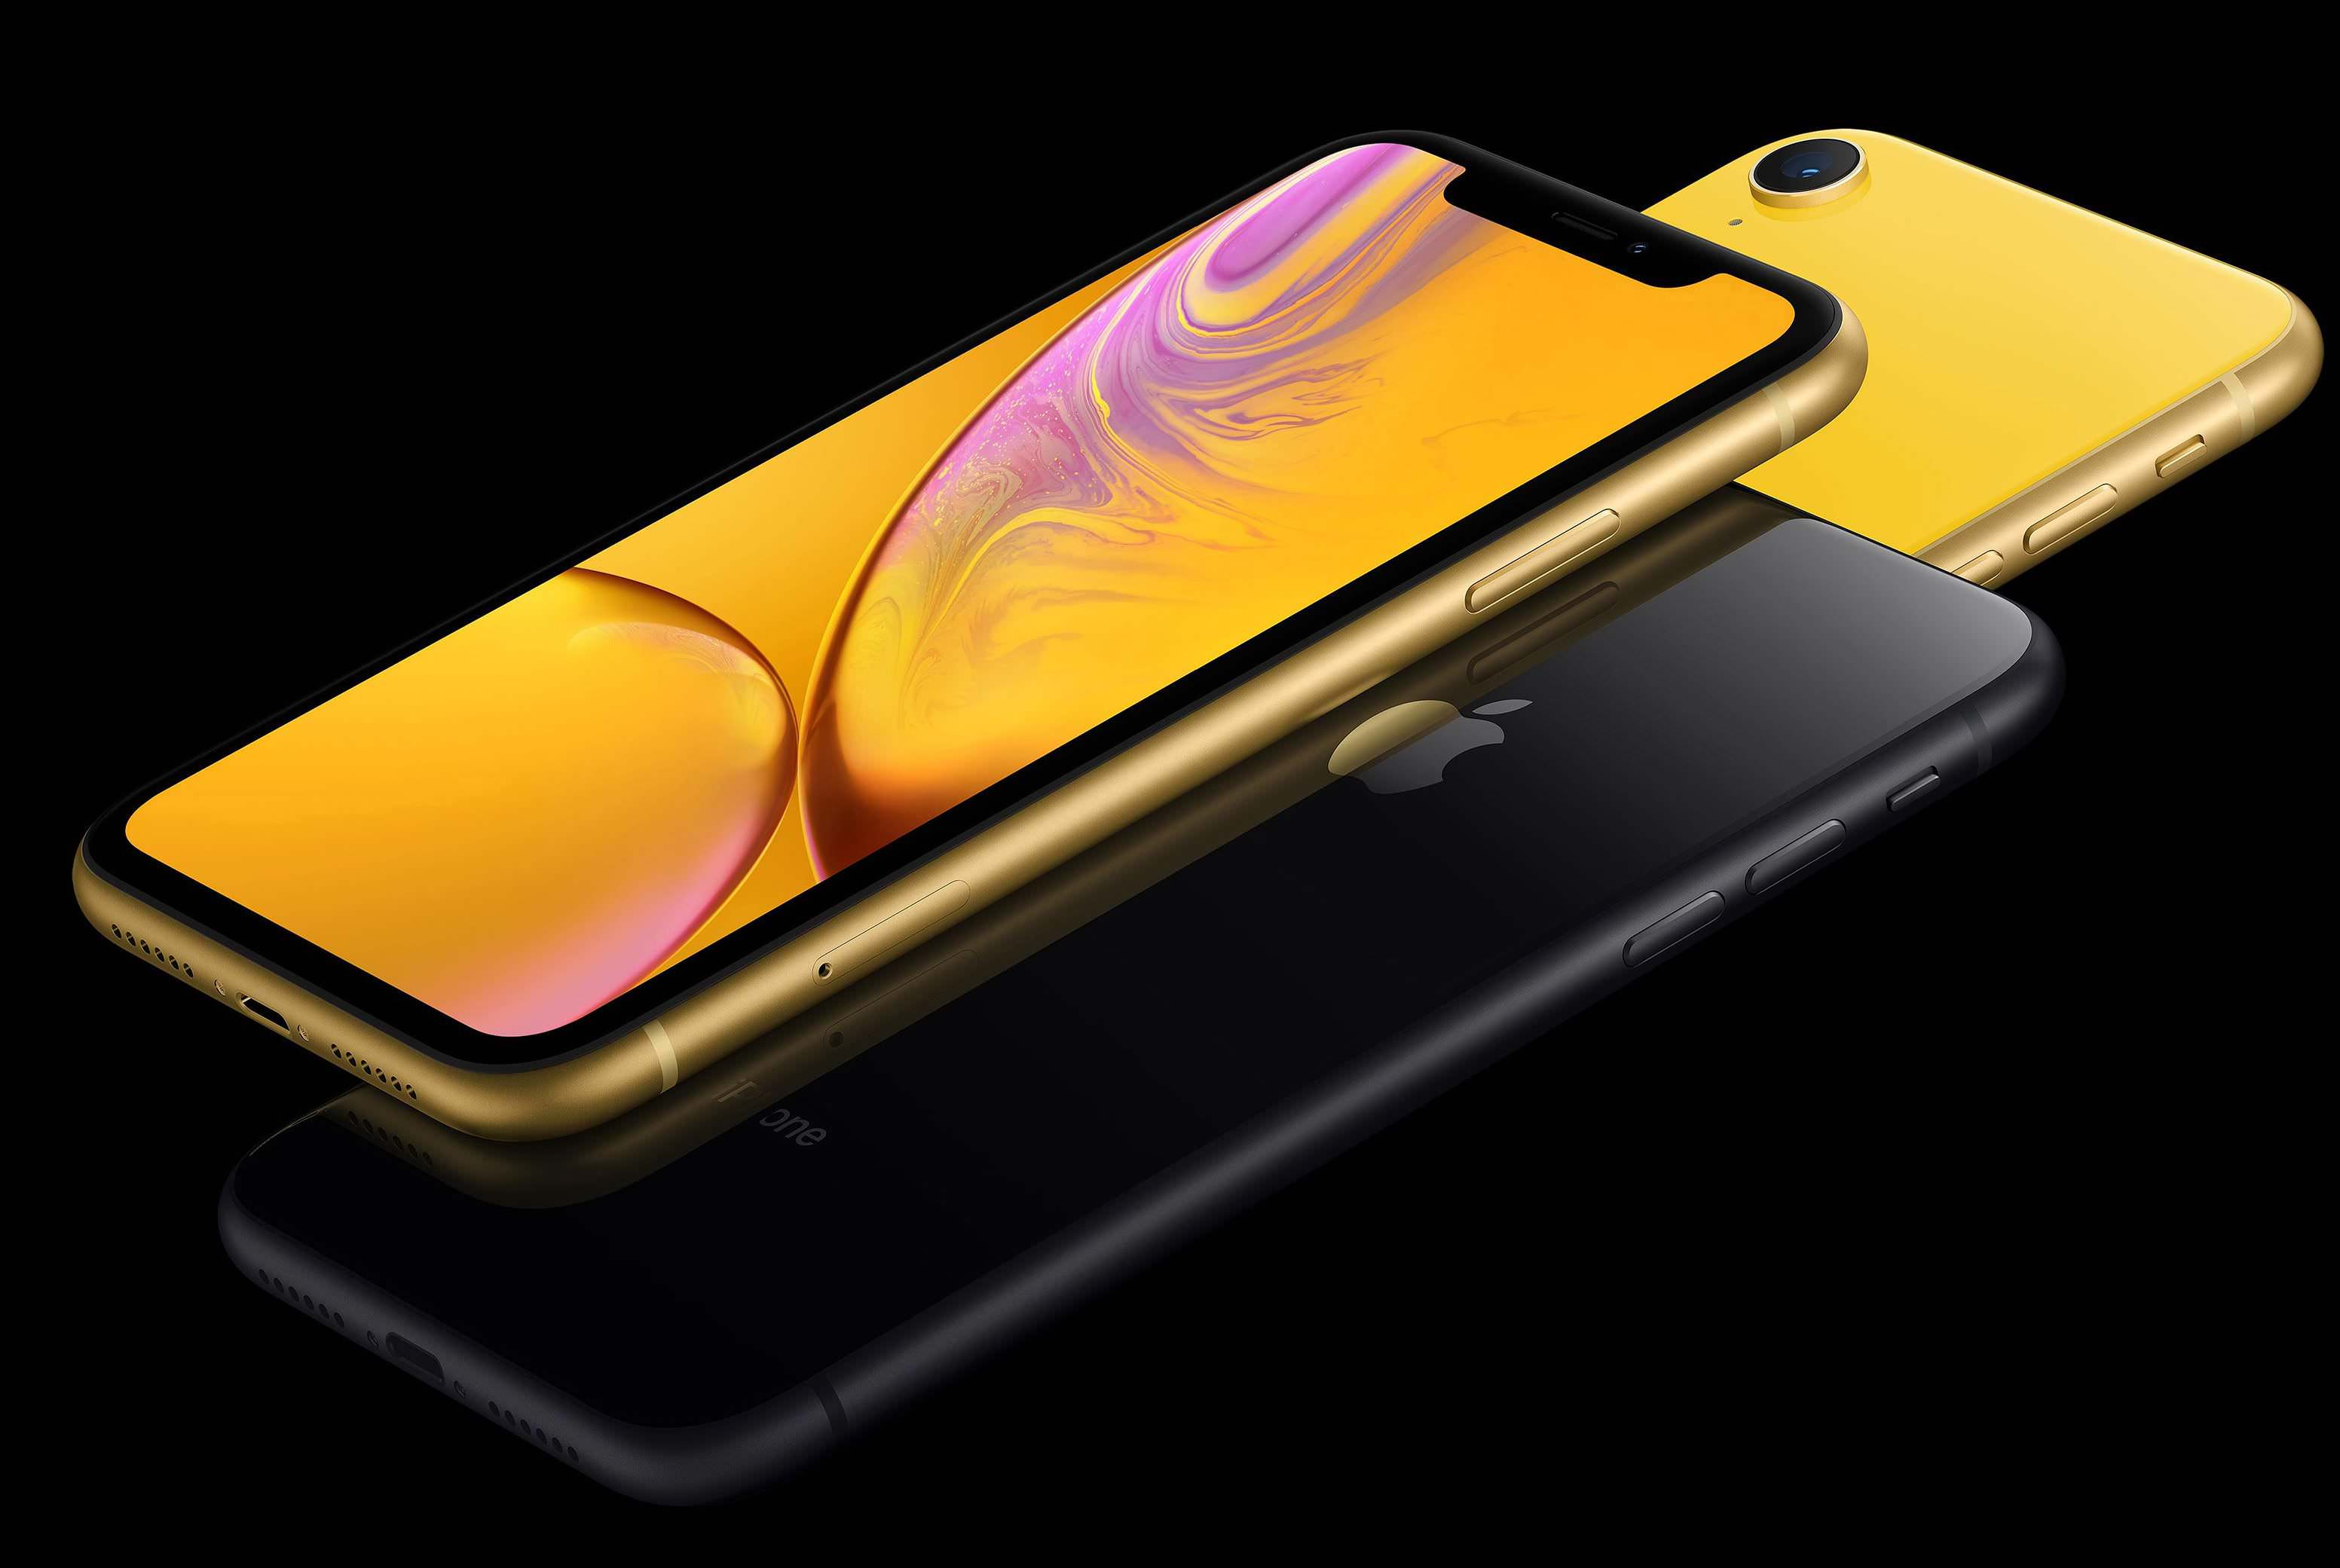 iPhone XR: All Of The Best Features At A Lower Prices